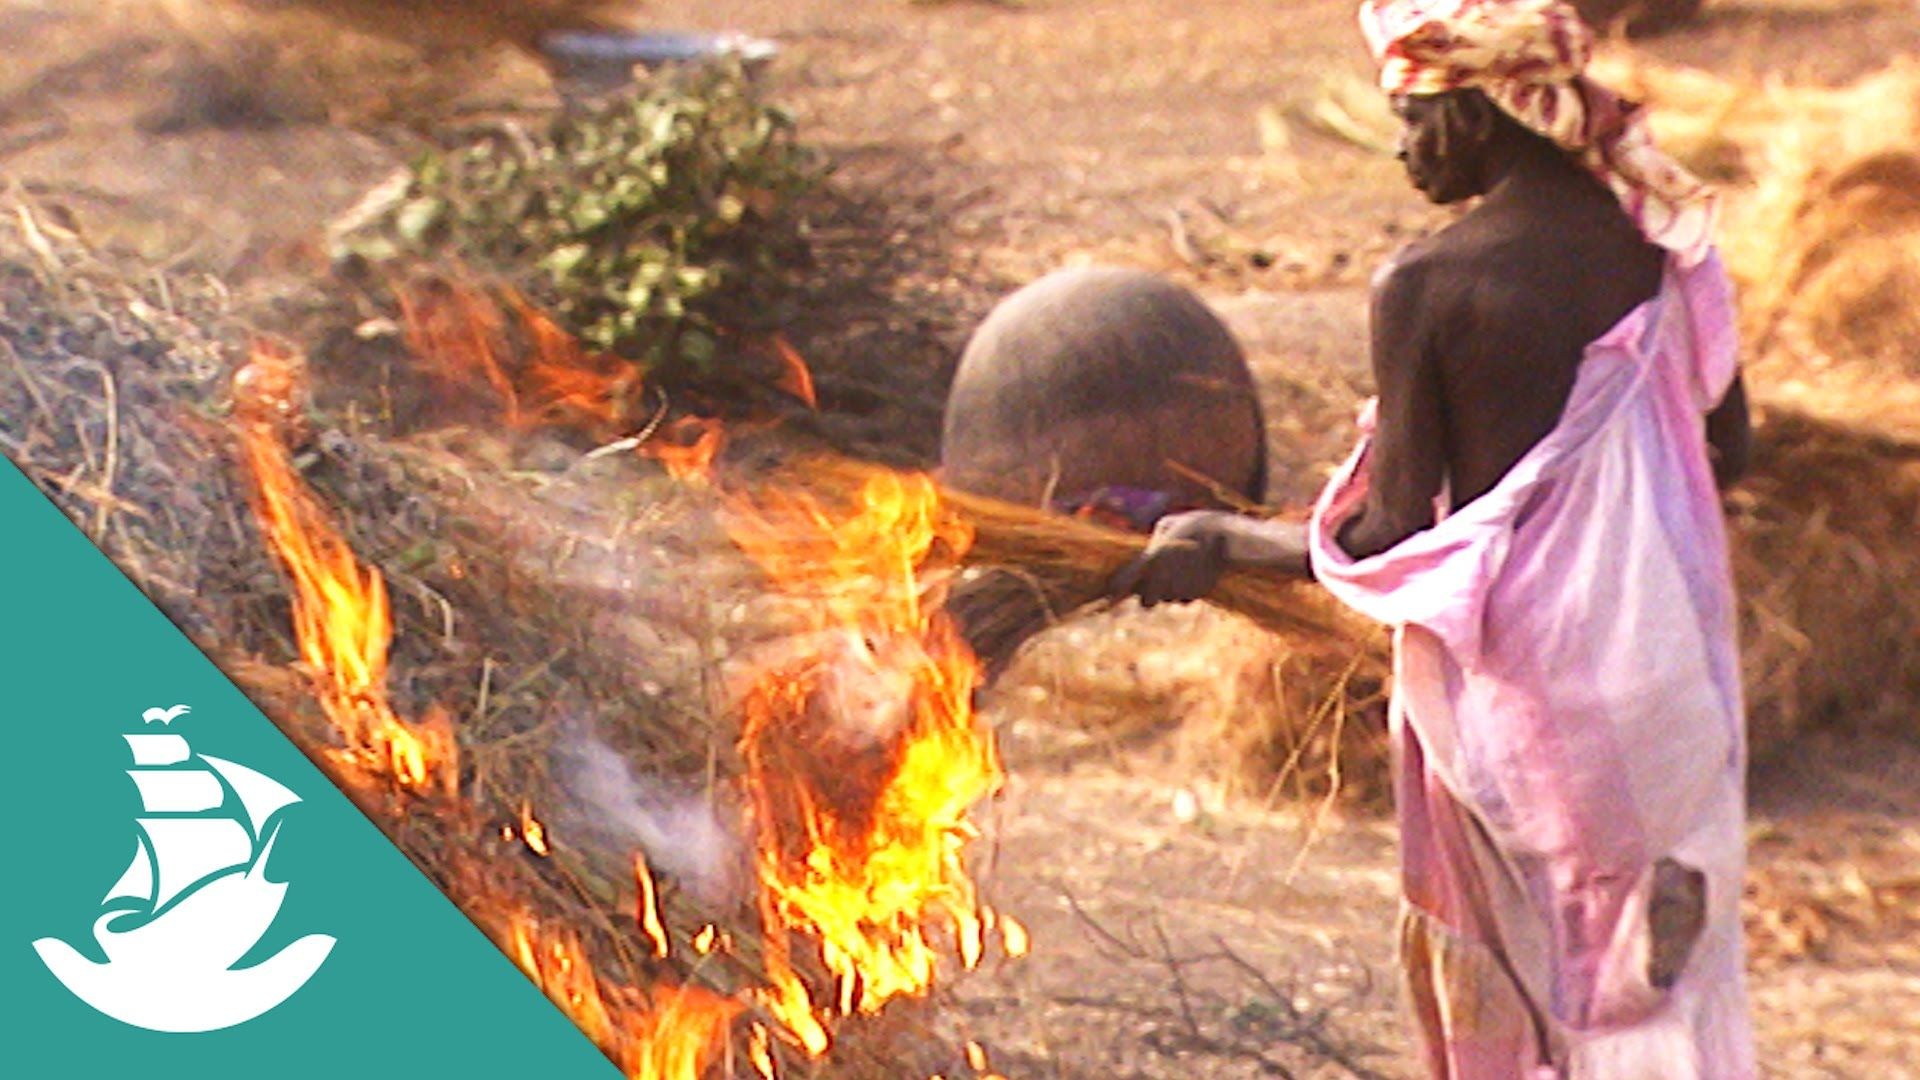 Sahel, The Heartbeat of Life - Now in High Quality! (Full Documentary)